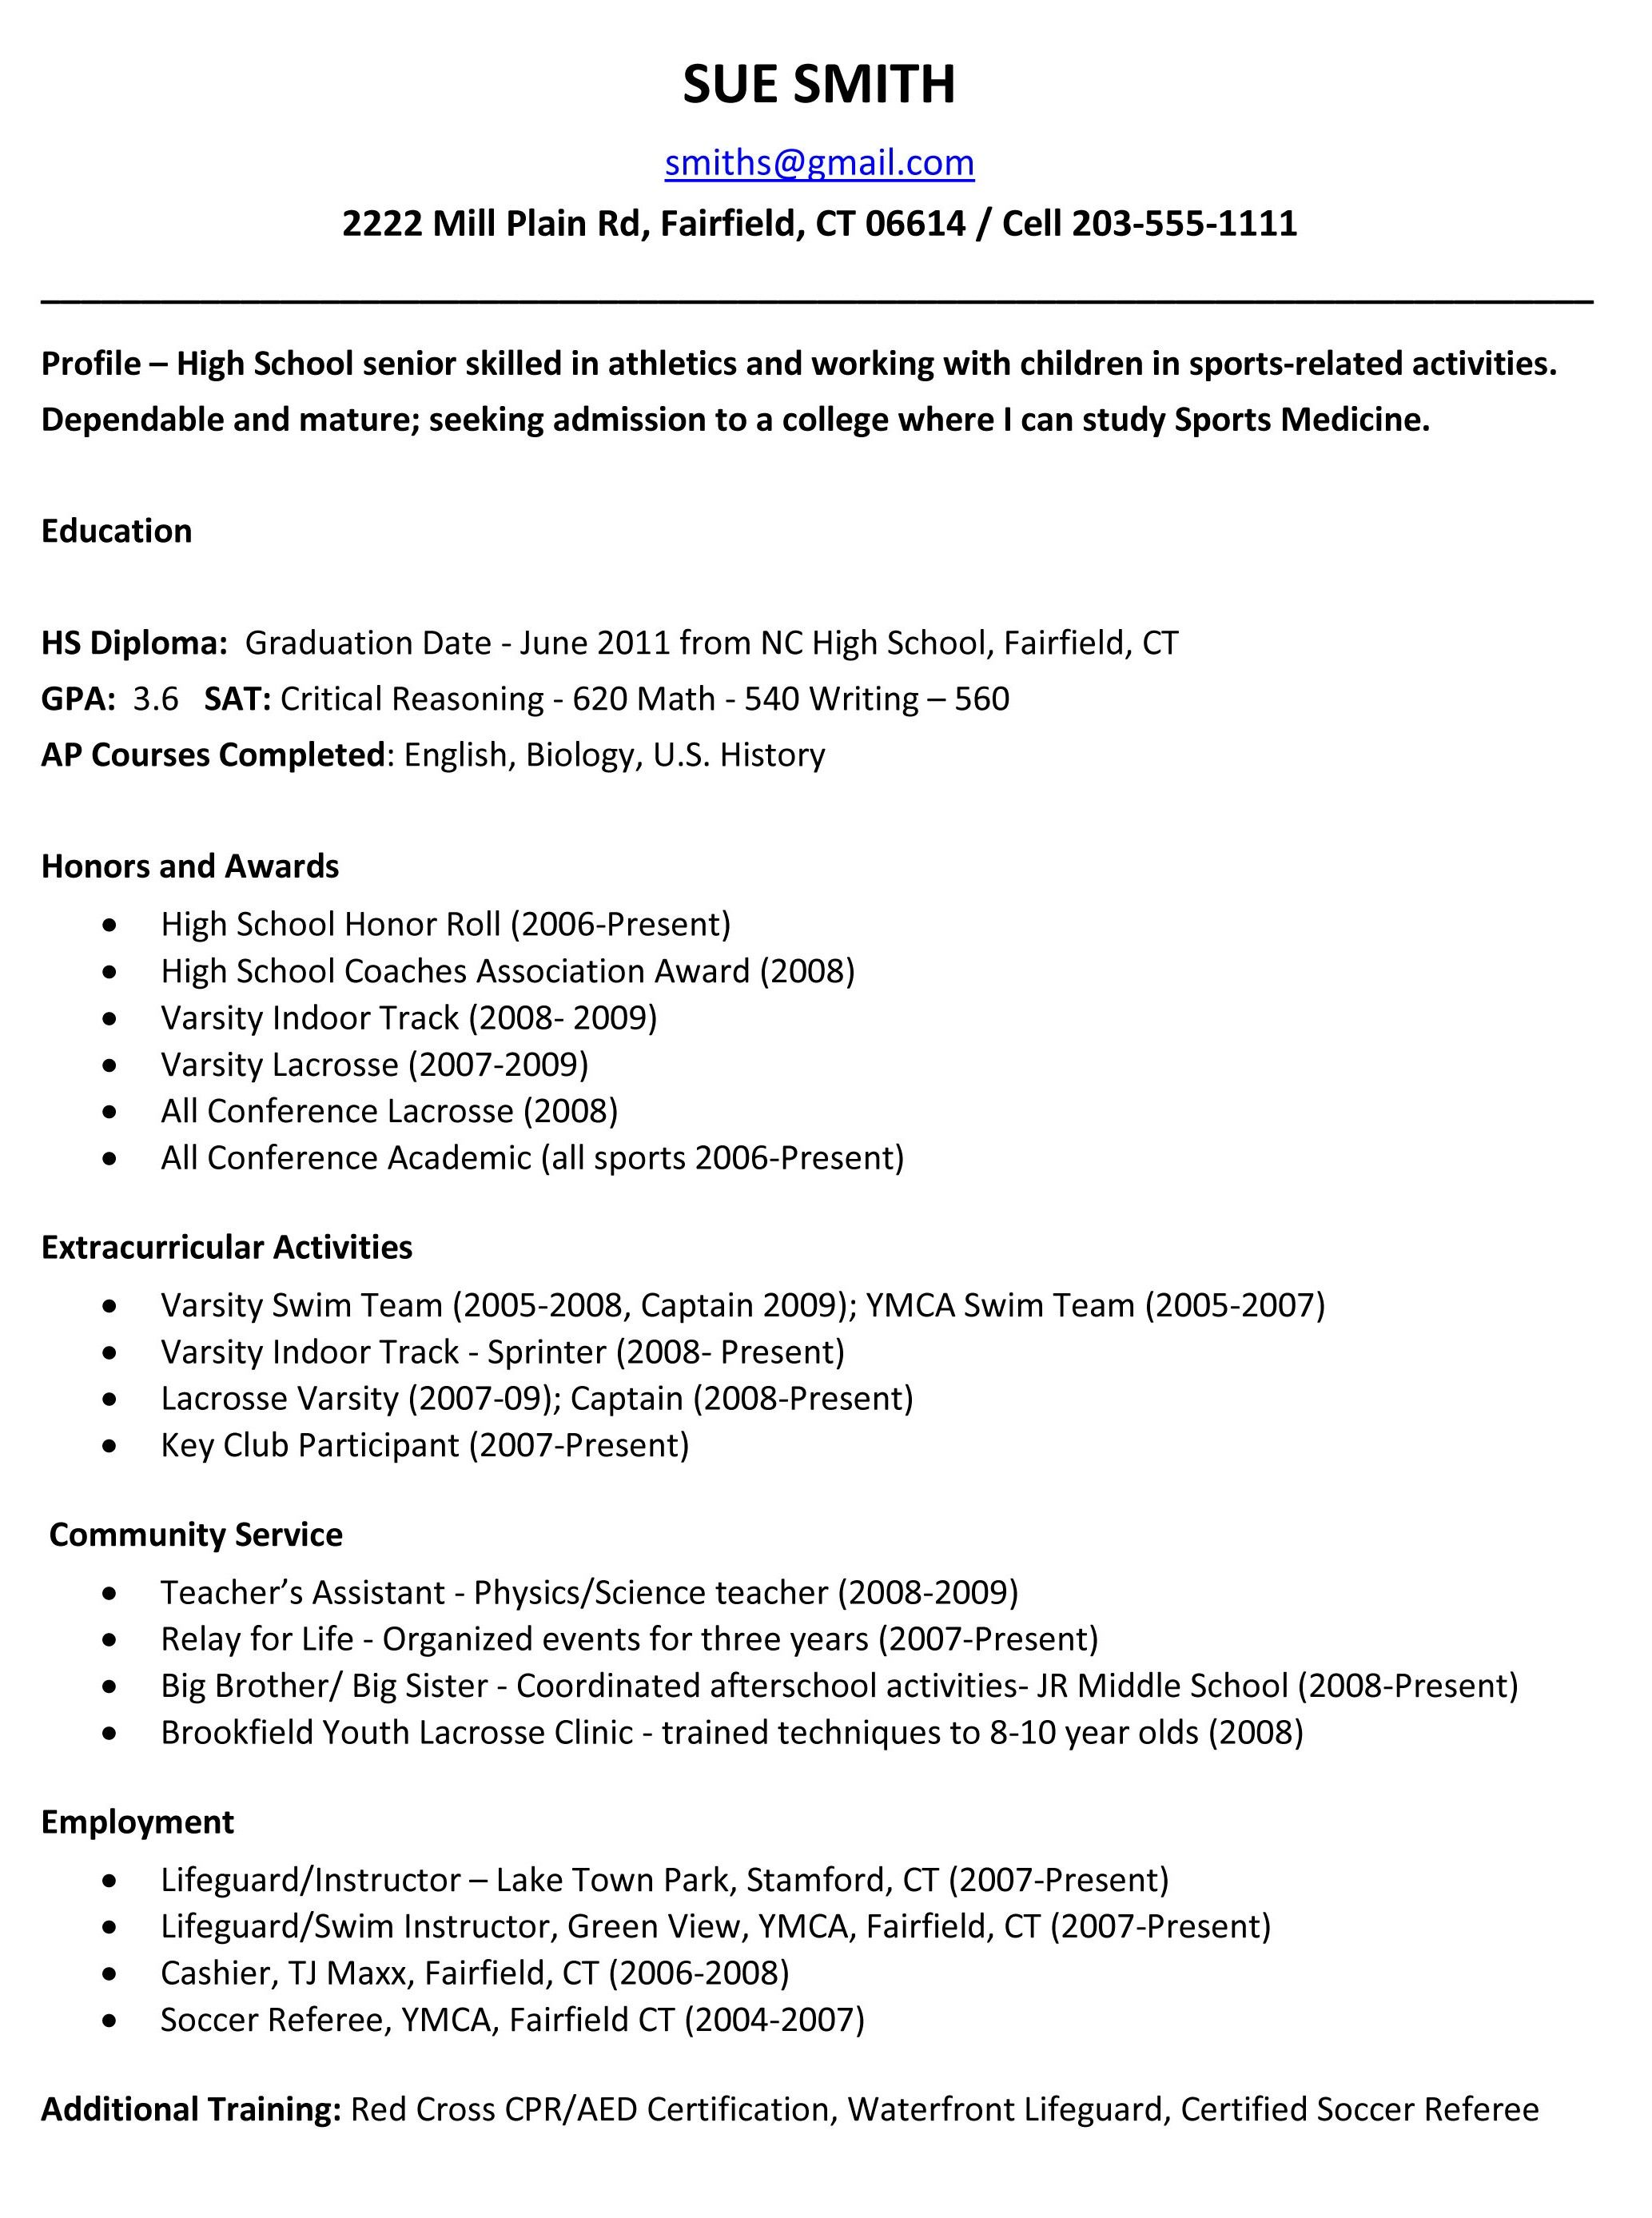 example resume for high school students for college applications school resume templateregularmidwesternerscom regularmidwesterners